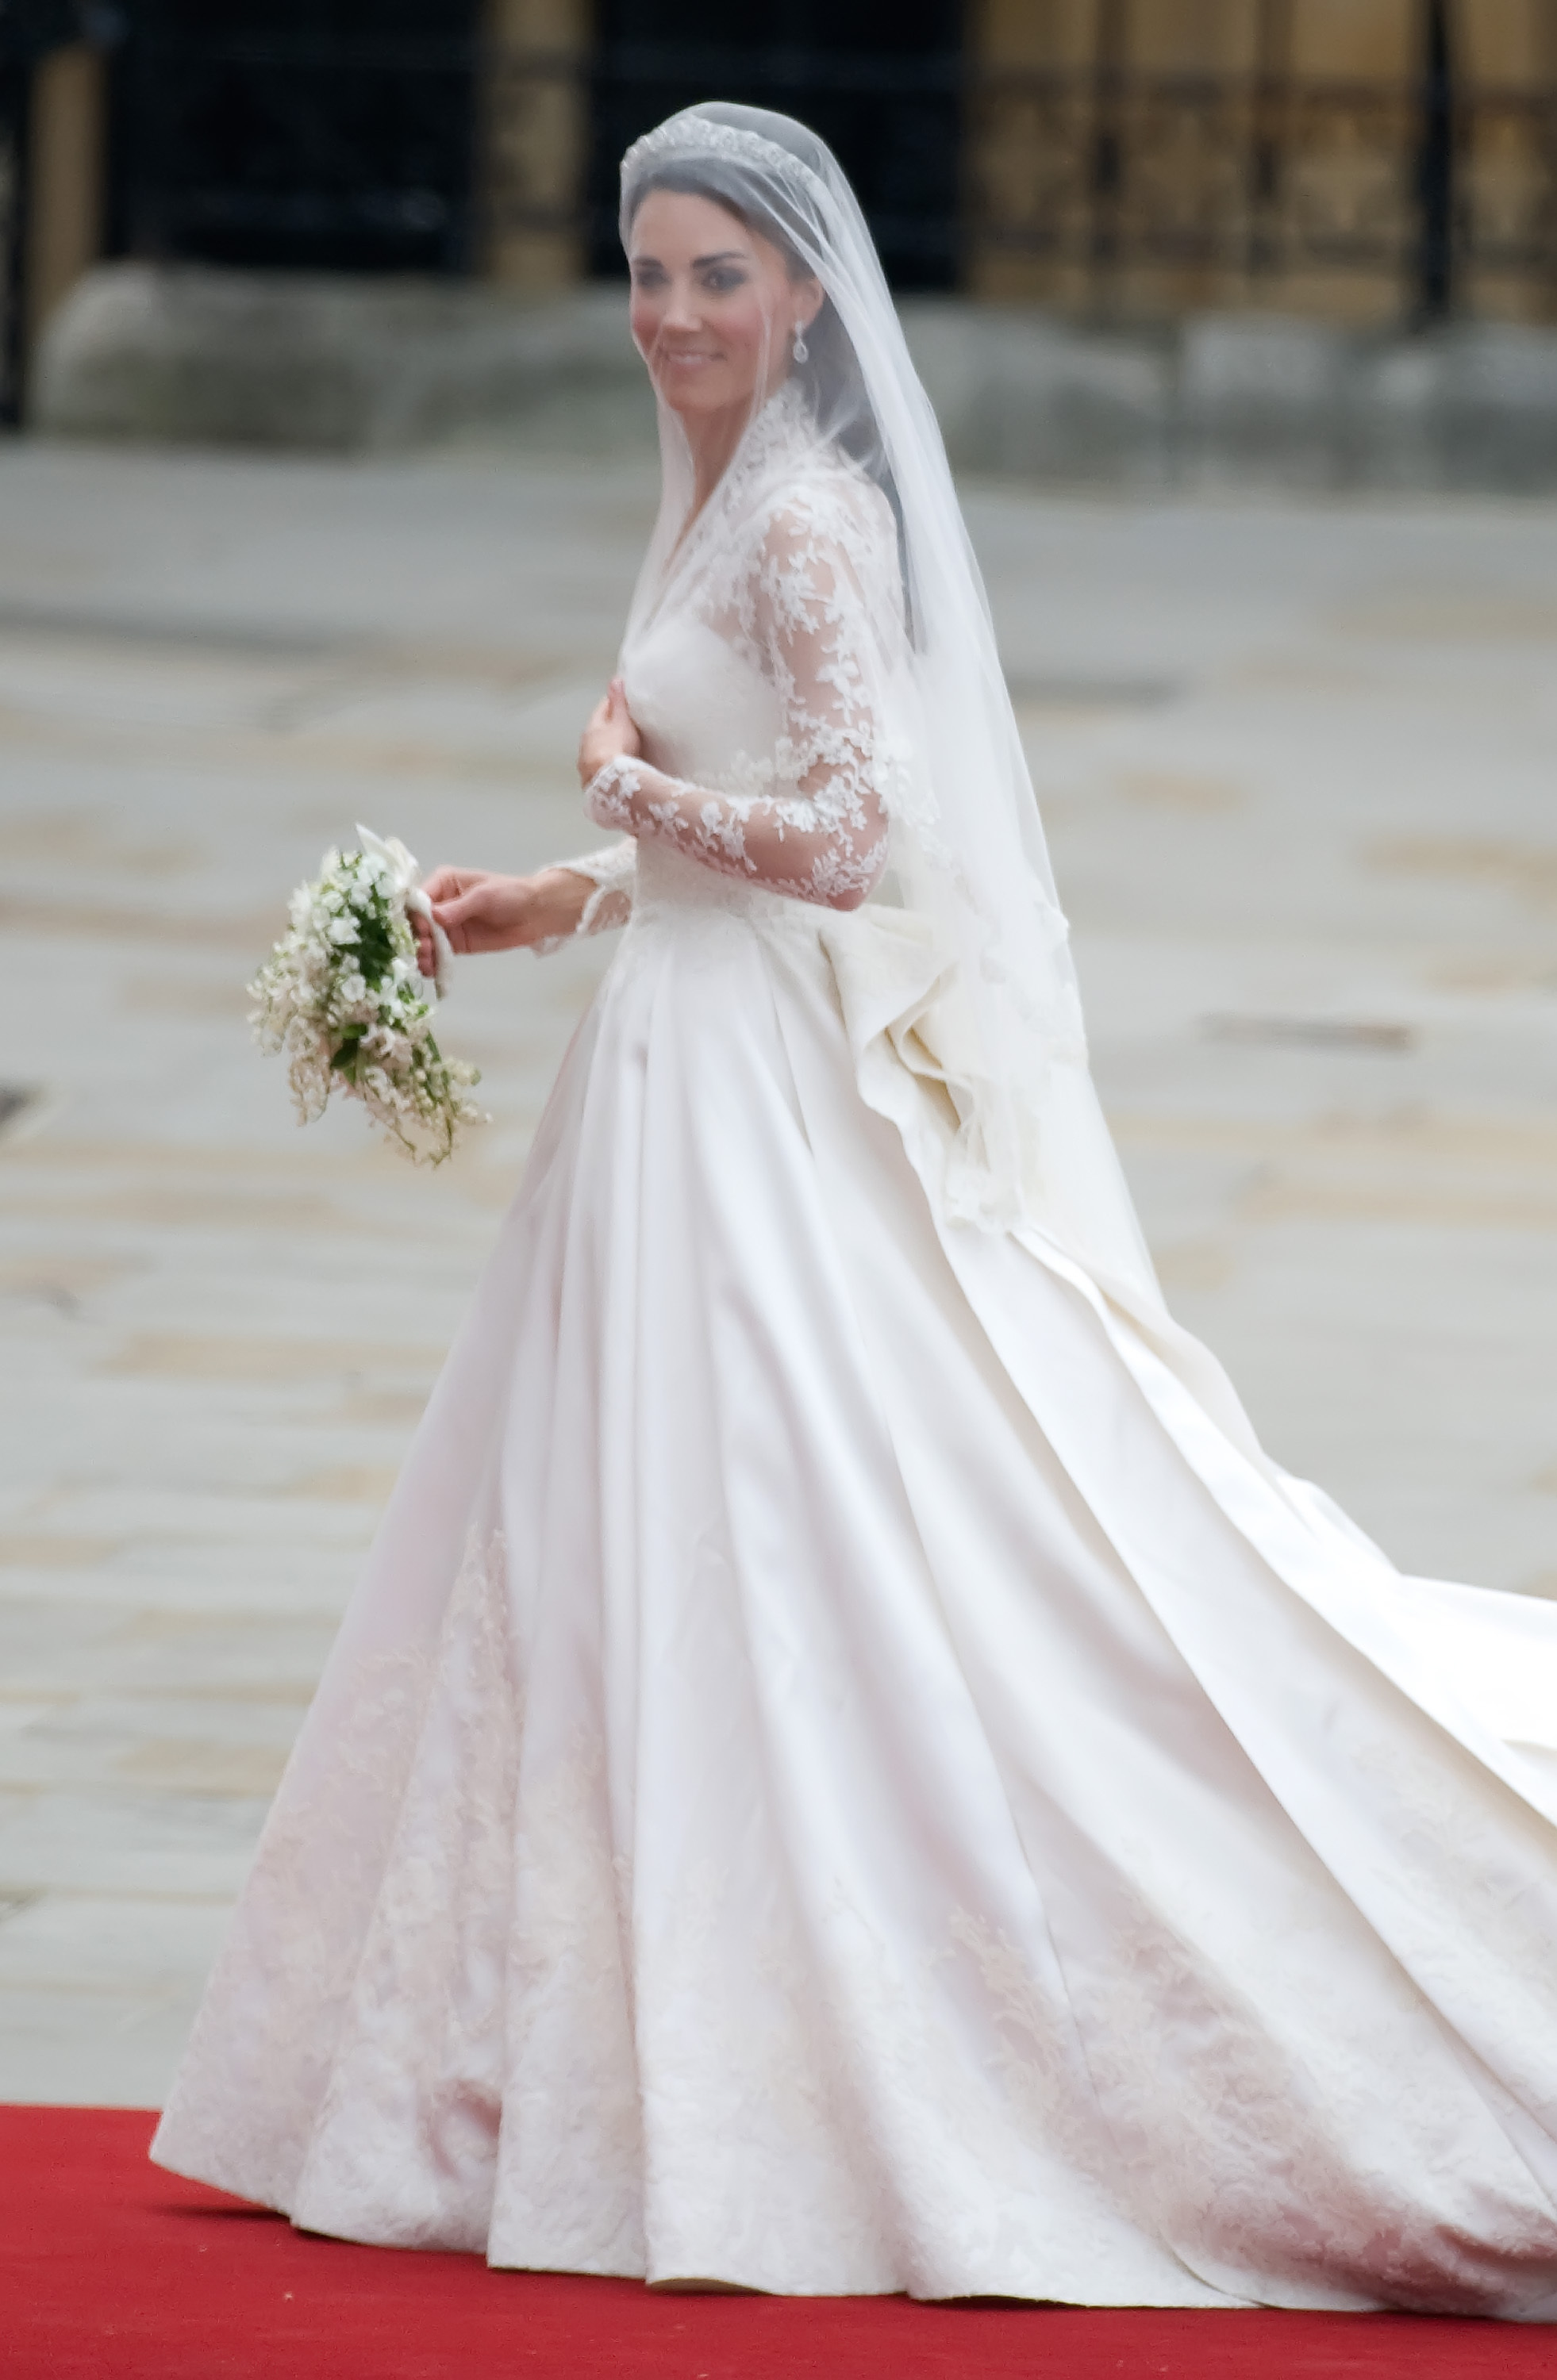 Kate Middleton in her wedding dress